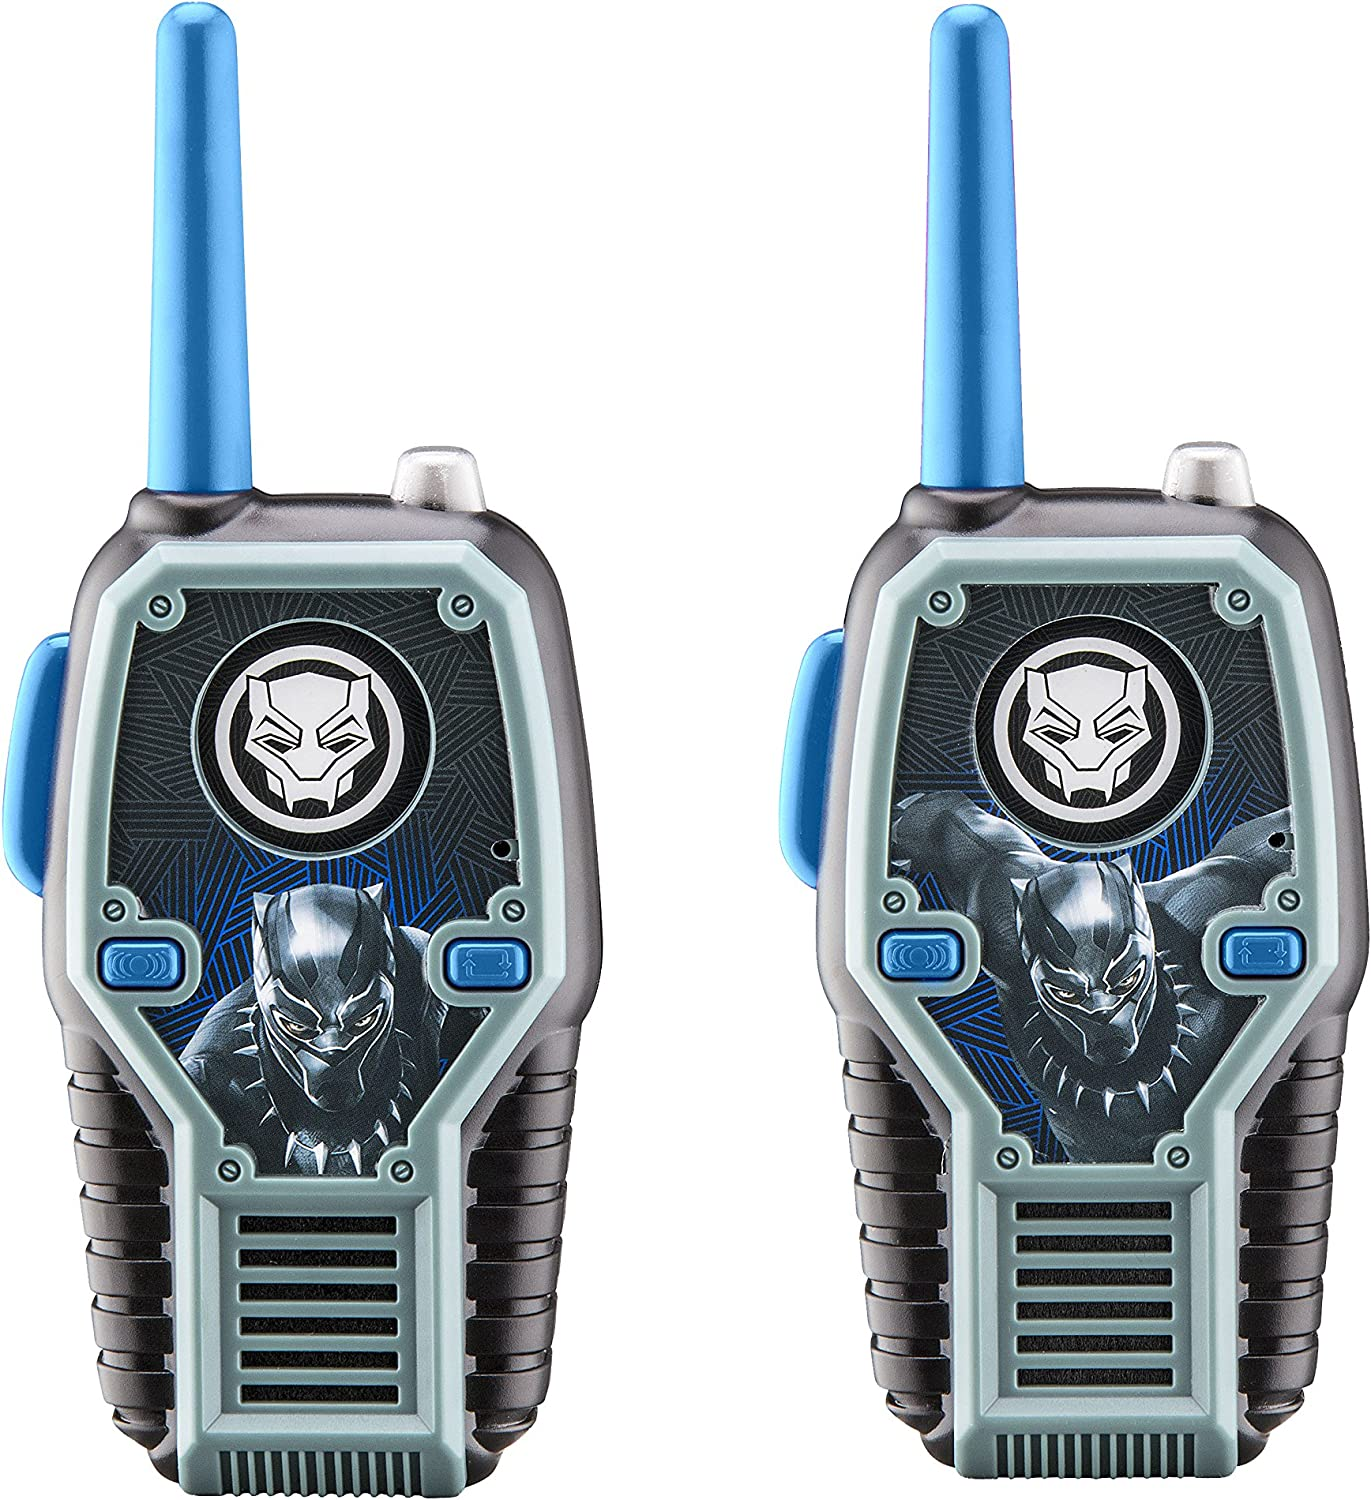 Black Panther FRS Walkie Talkies with Lights and Sounds Kid Friendly Easy to Use